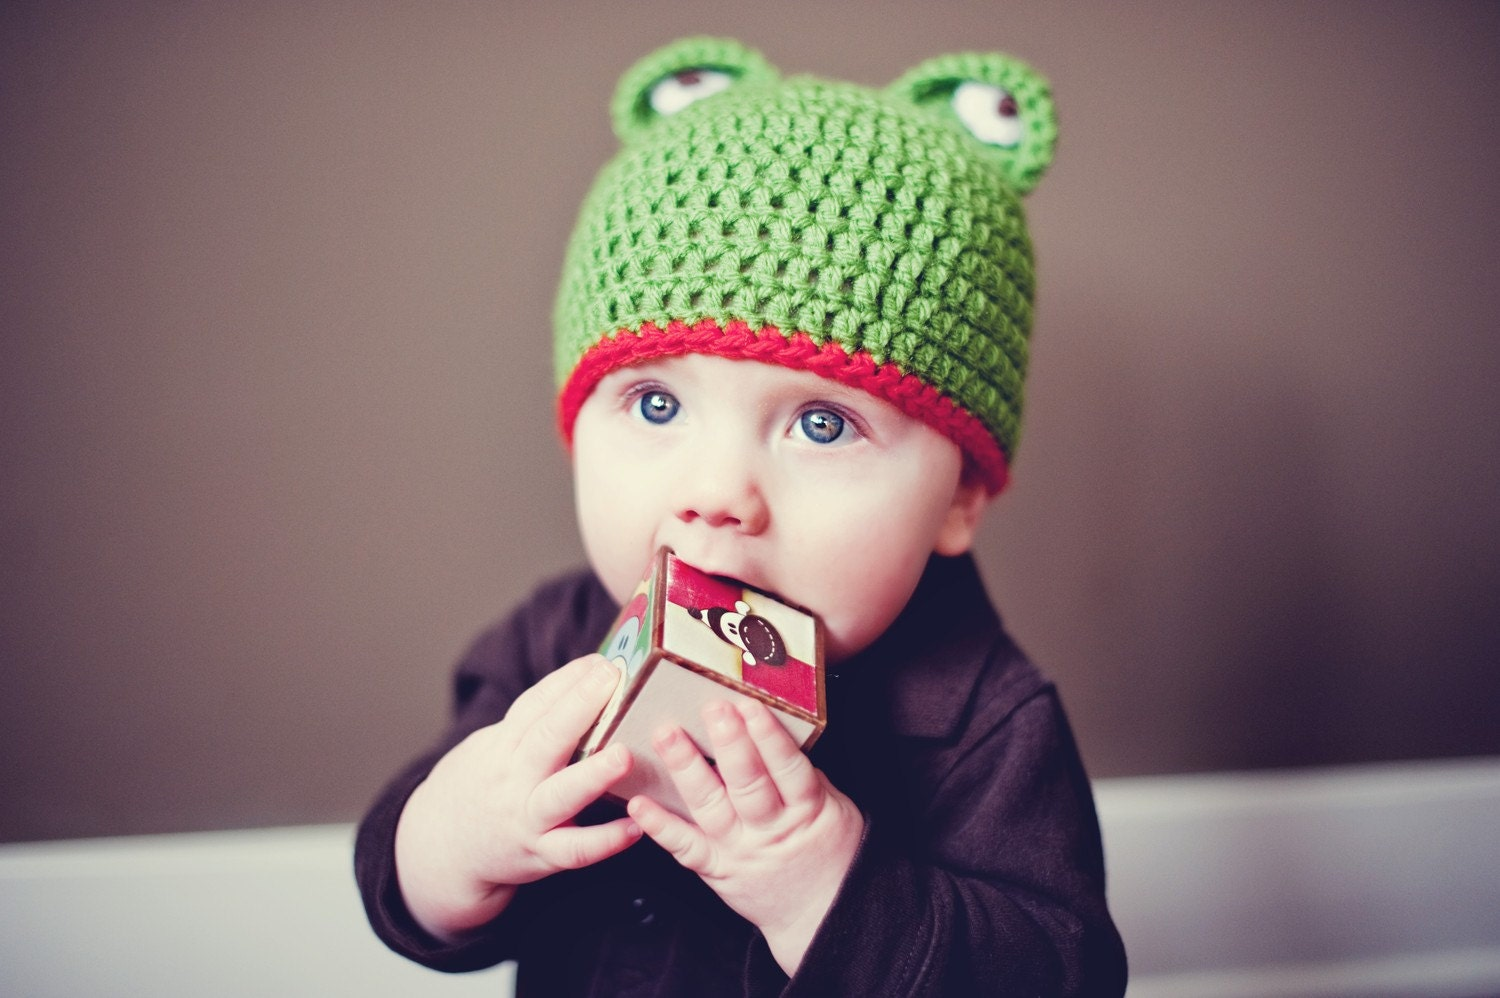 Free Crochet Pattern For Kermit The Frog Hat : Crochet PATTERN Frog Hat Instant download by littlepunky ...